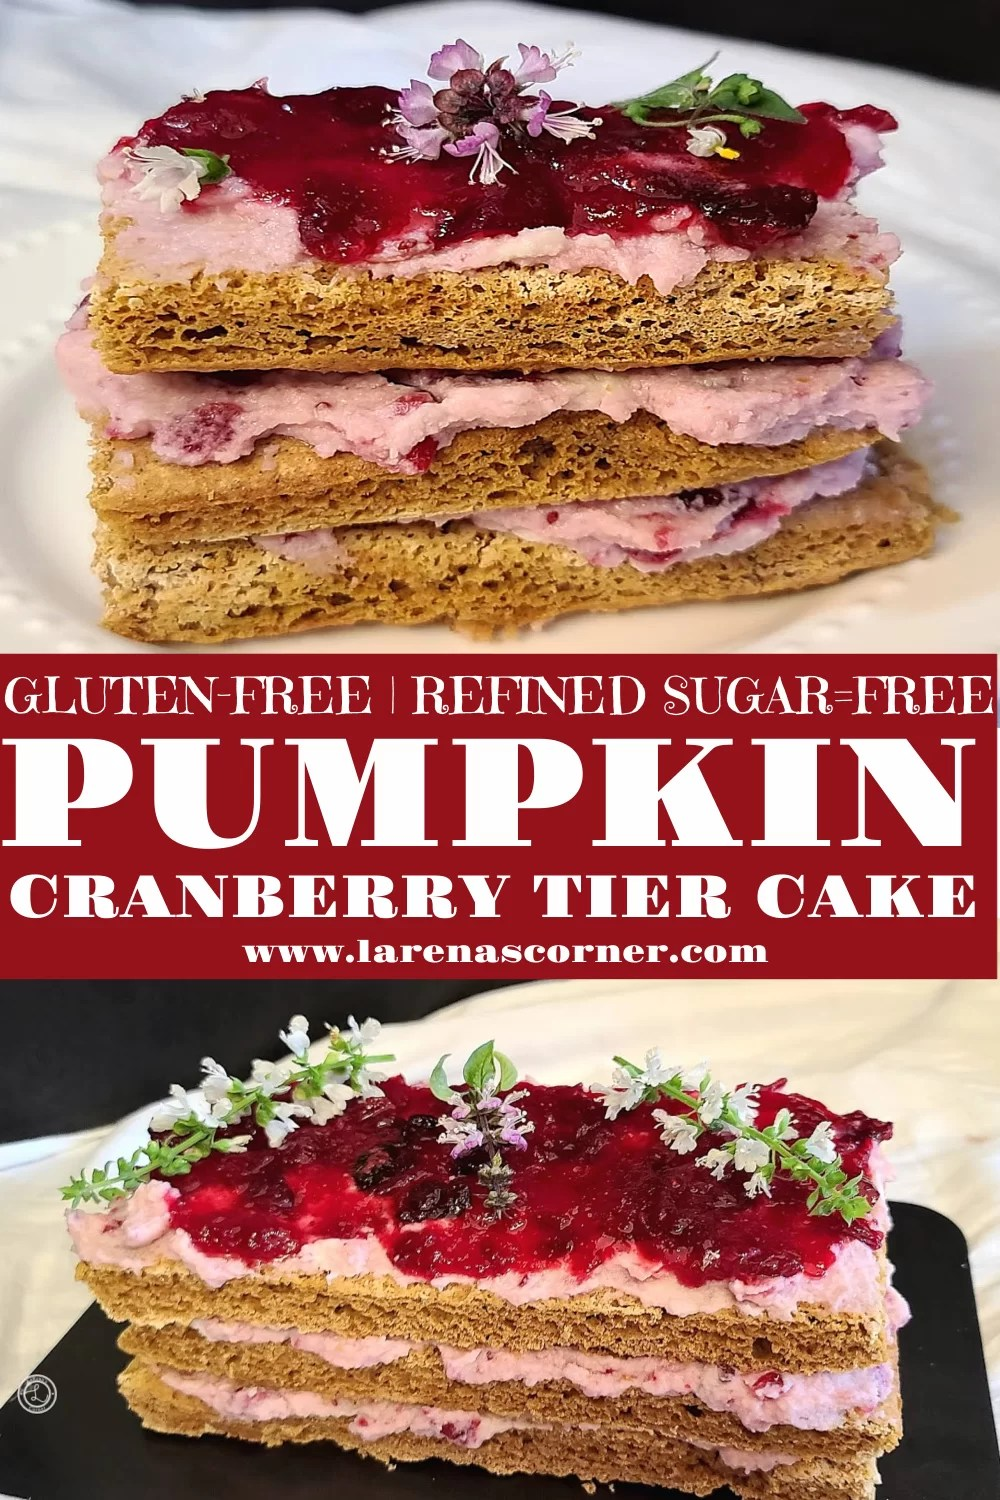 Pumpkin Cranberry Tier Cake. One picture of the whole cake and one of a slice of cake.kin Tier